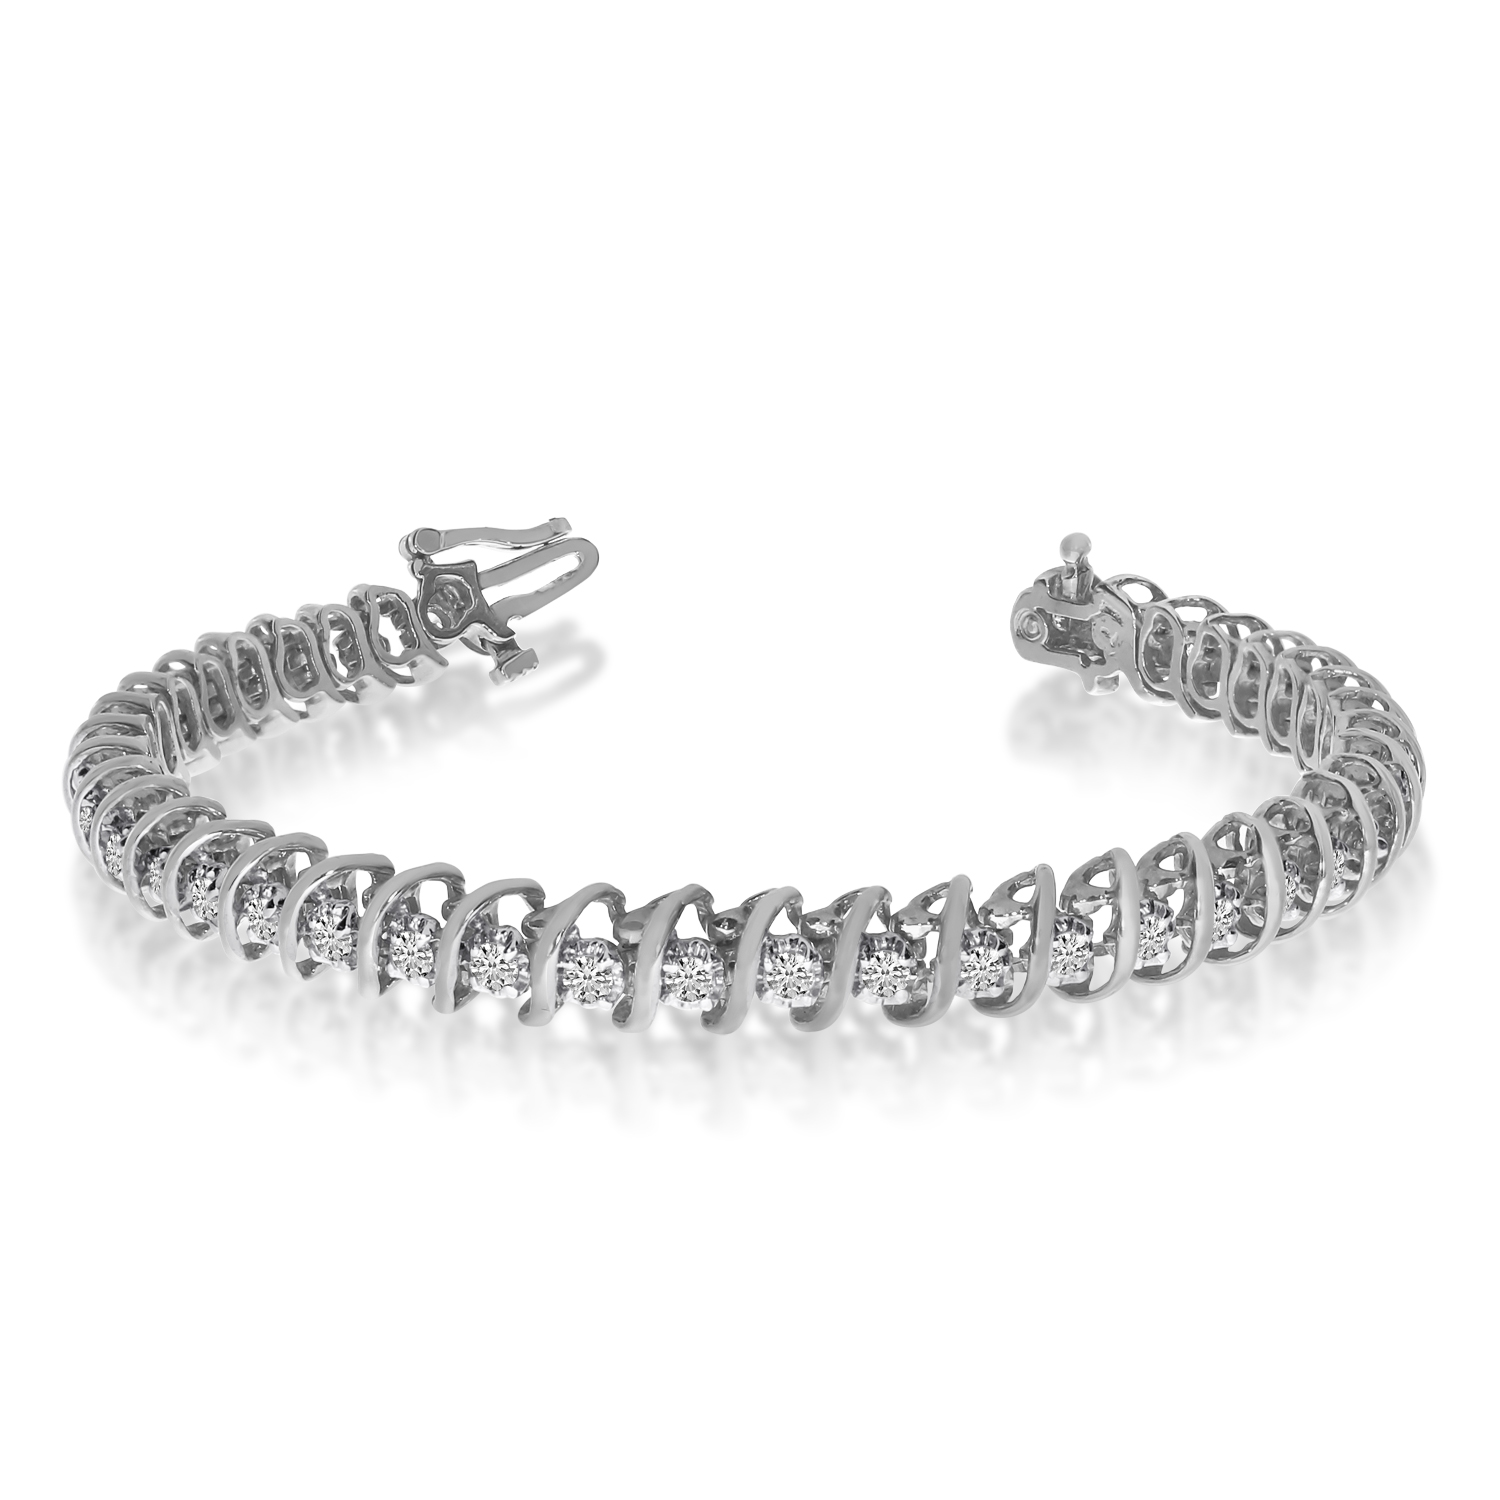 14k White Gold 2 Ct. S Illusion Bracelet by